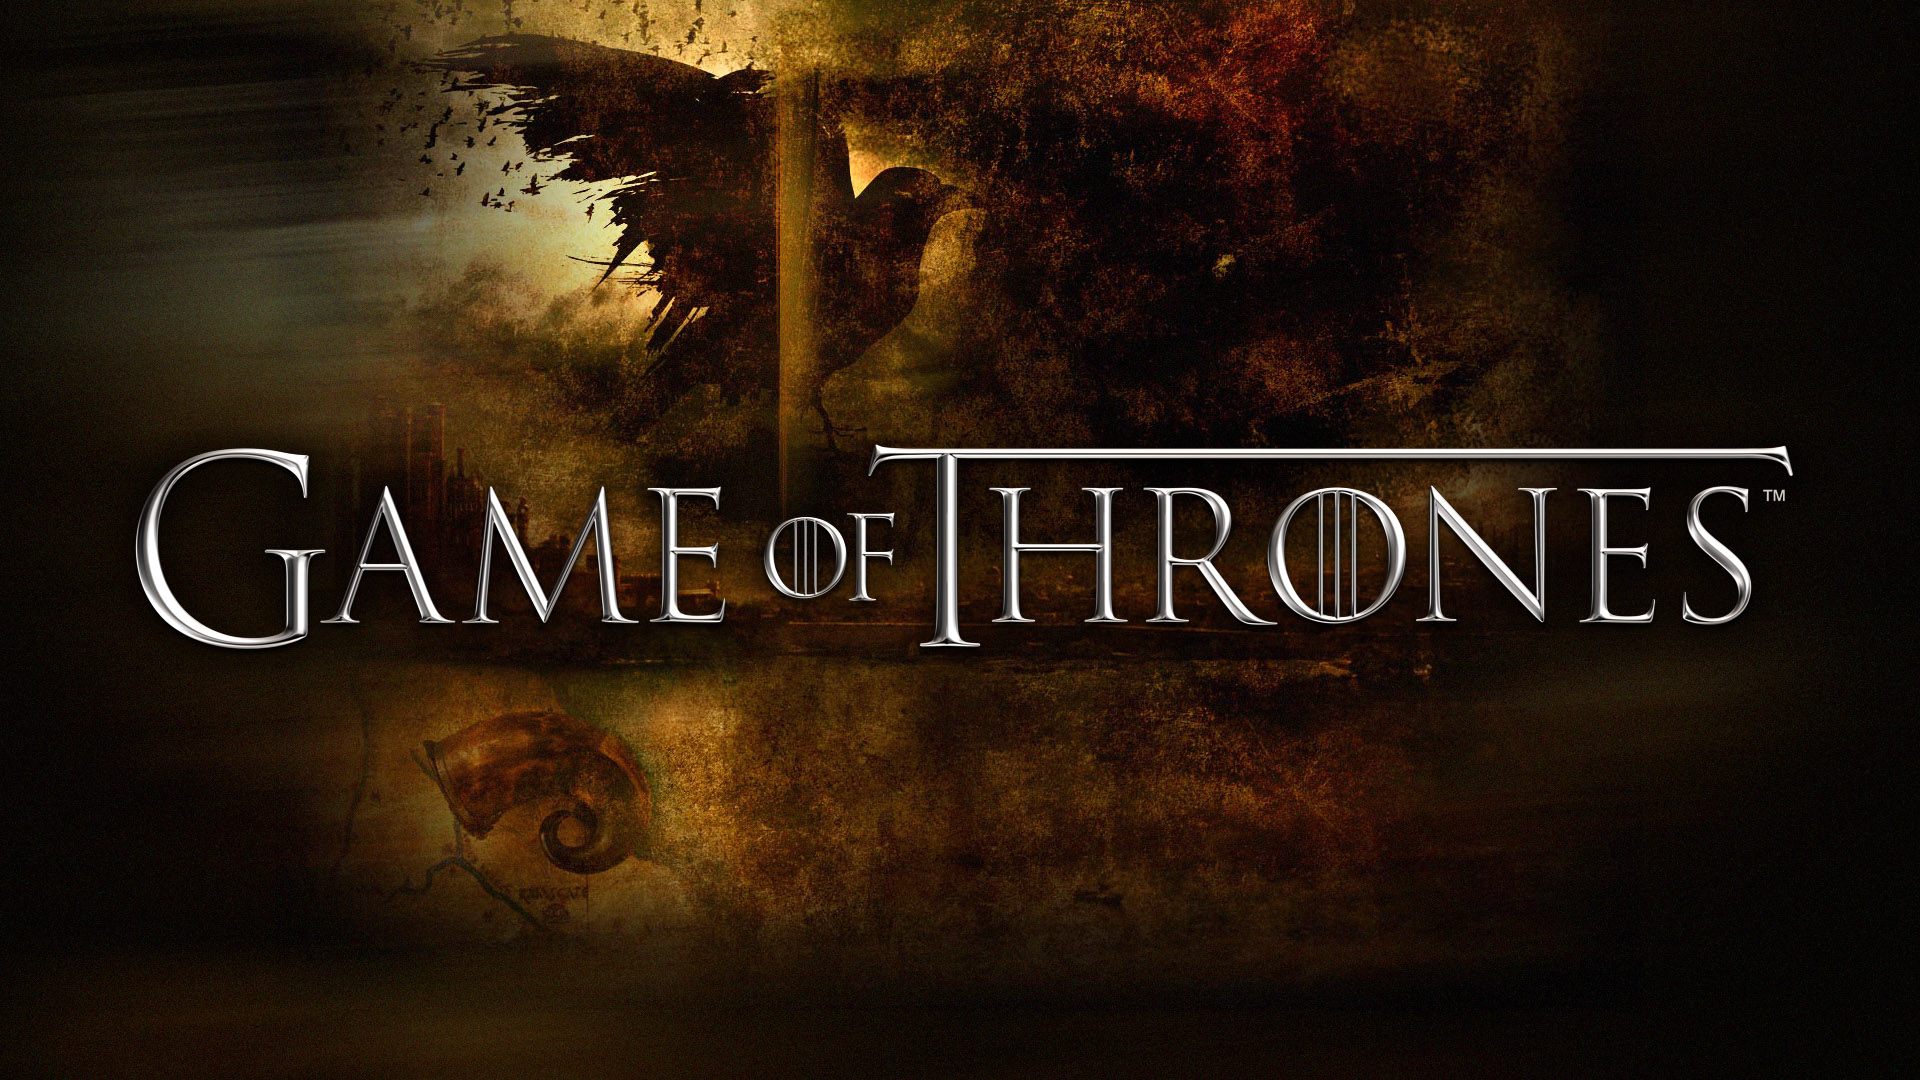 'HBO' – Confirmada última temporada de Game of Thrones em 2019